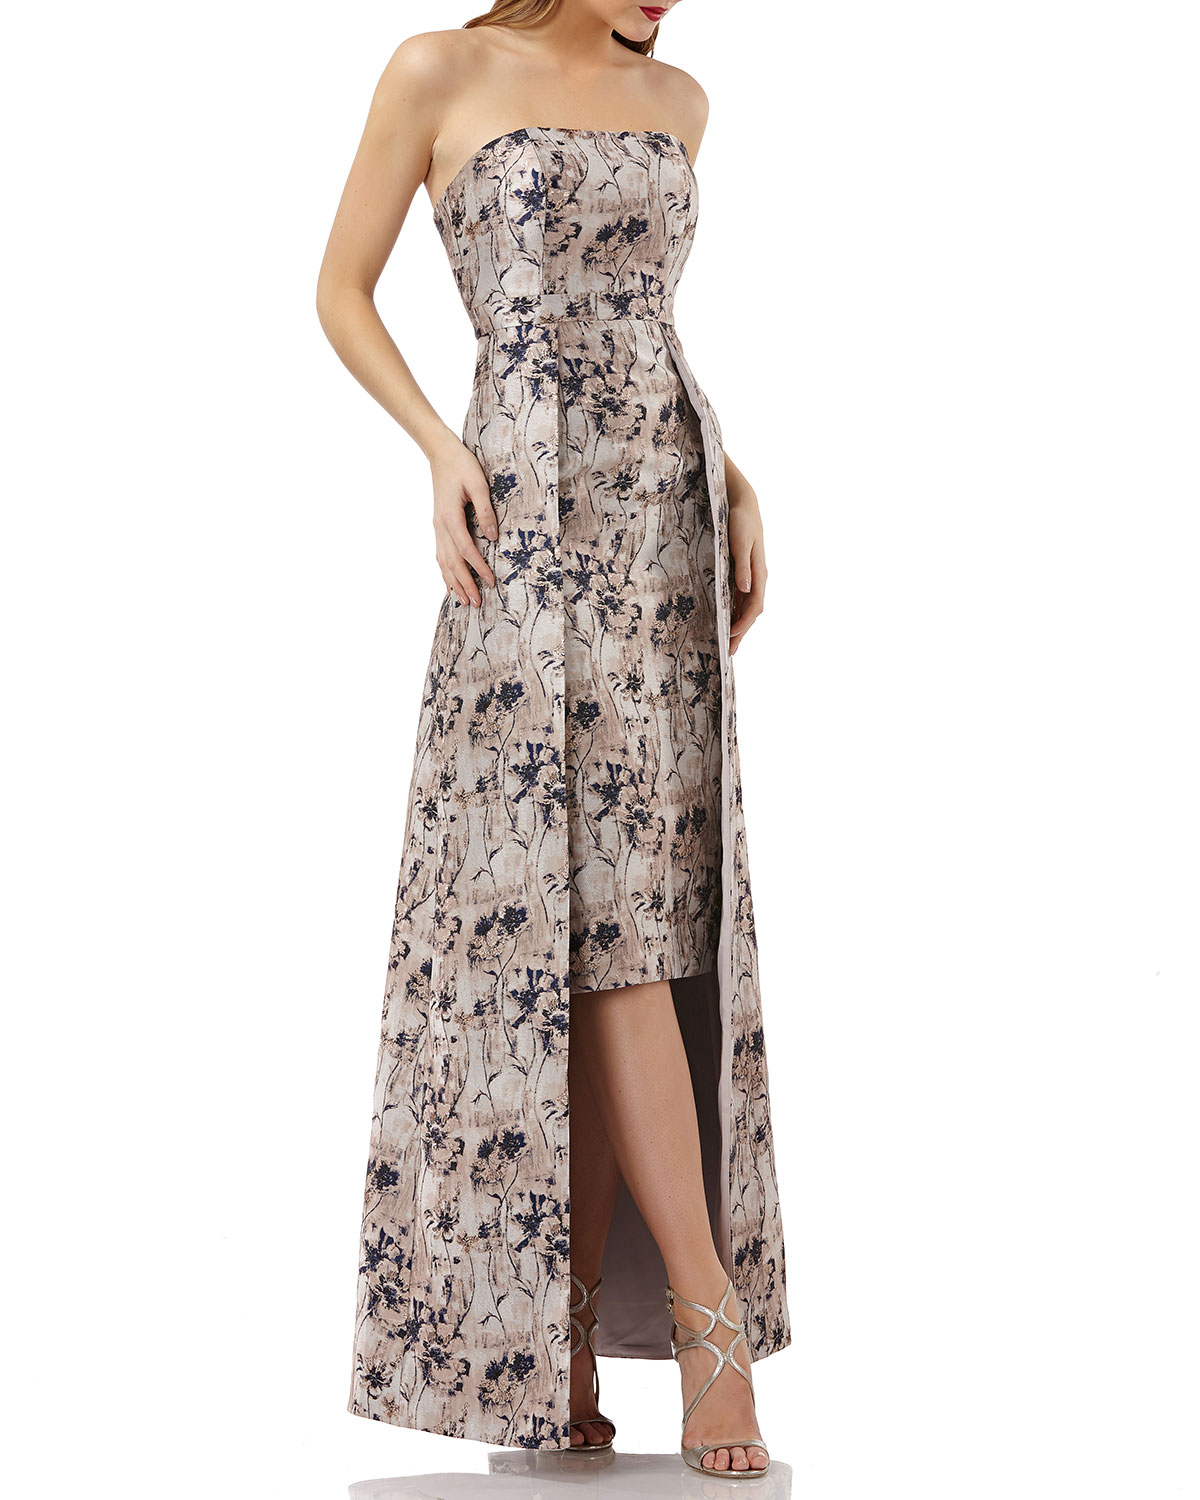 KAY UNGER METALLIC JACQUARD GOWN W/ FLORAL OVERLAY